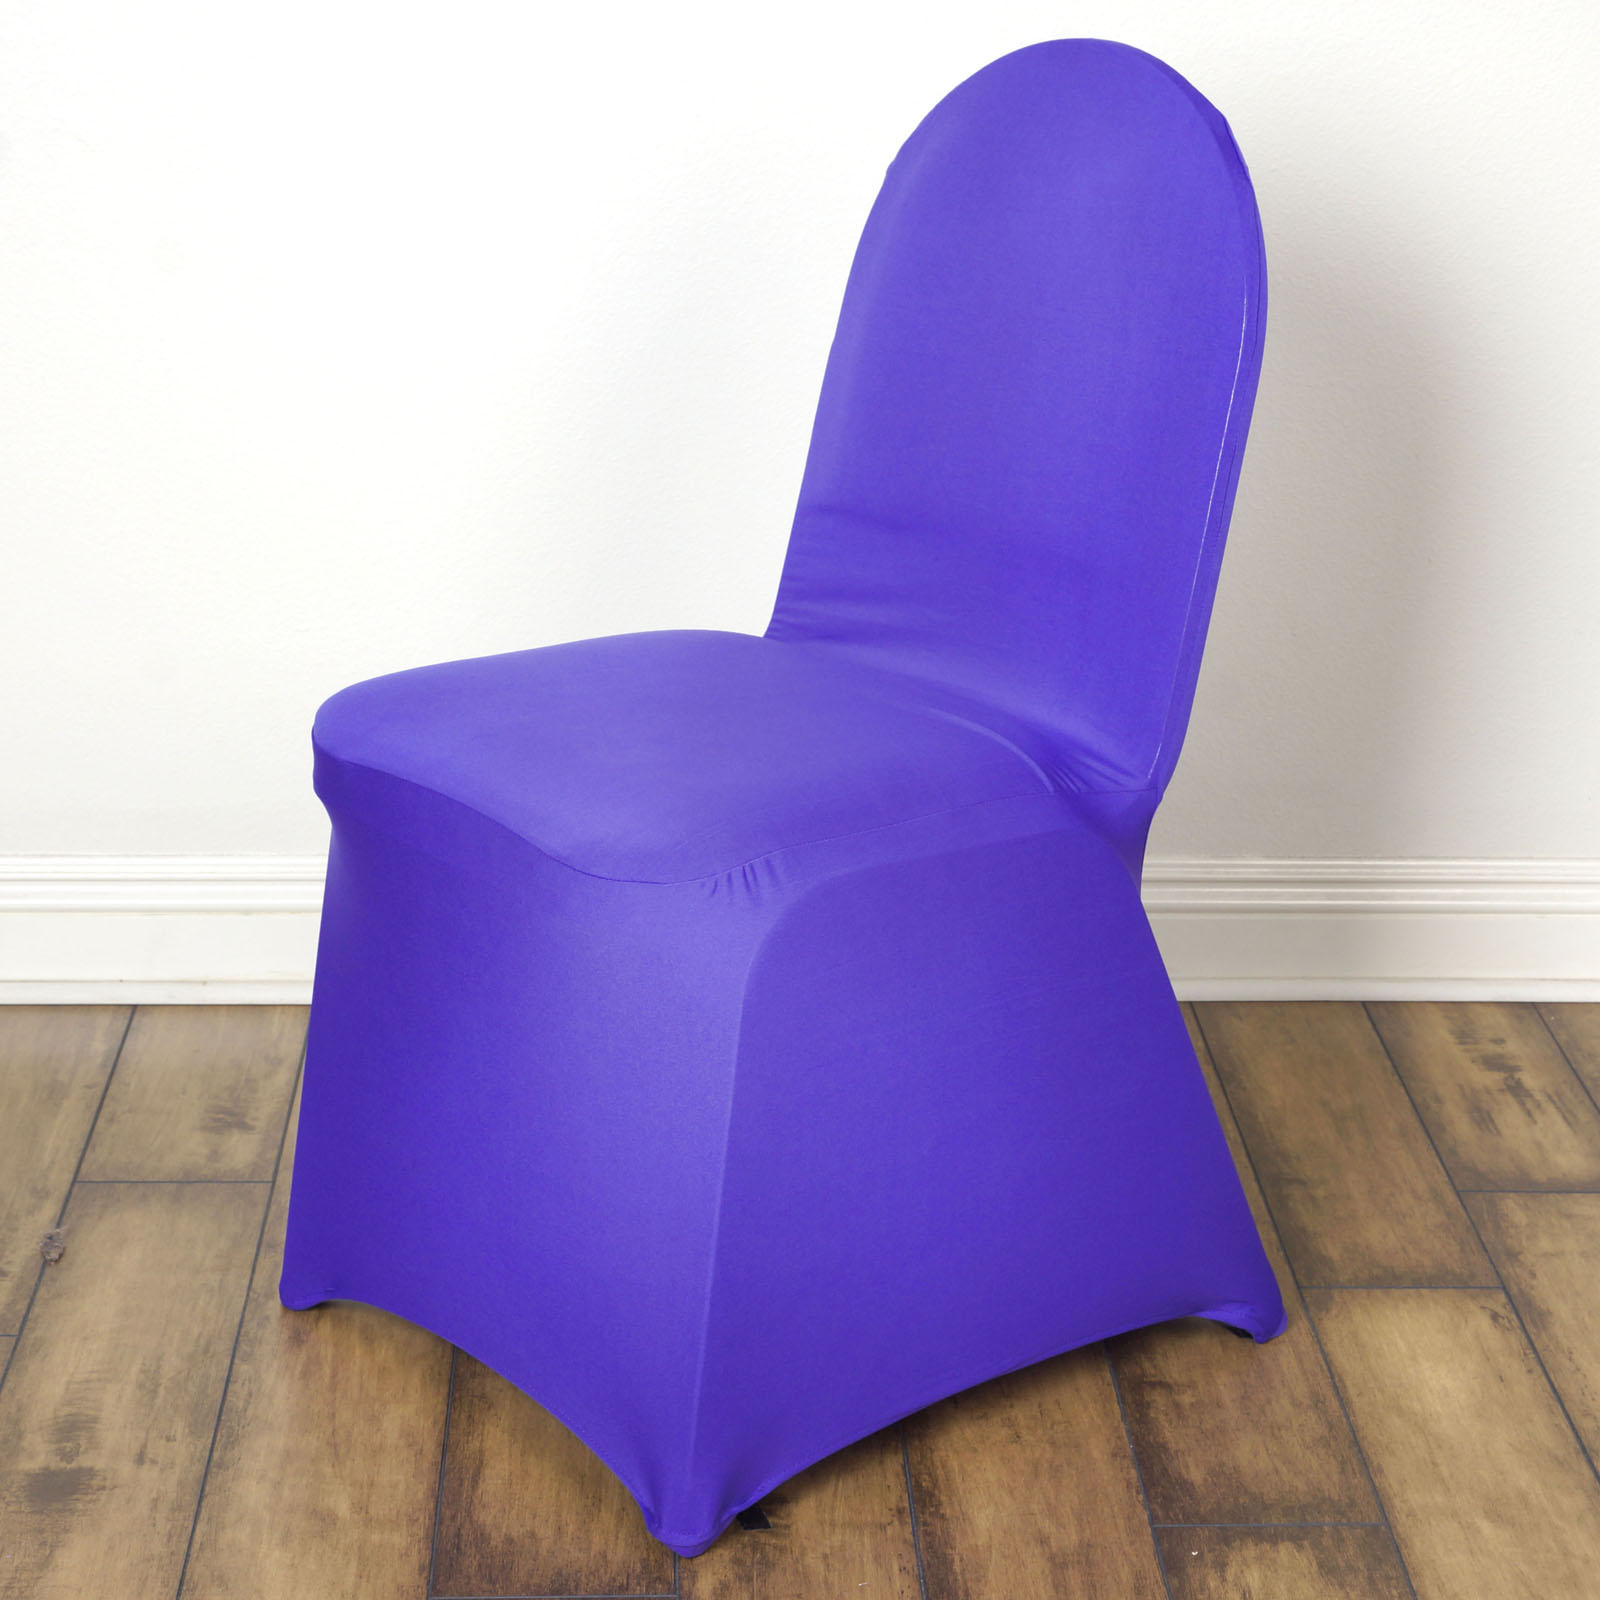 spandex chair covers for sale in johannesburg fabric garden chairs stretchable wedding reception party